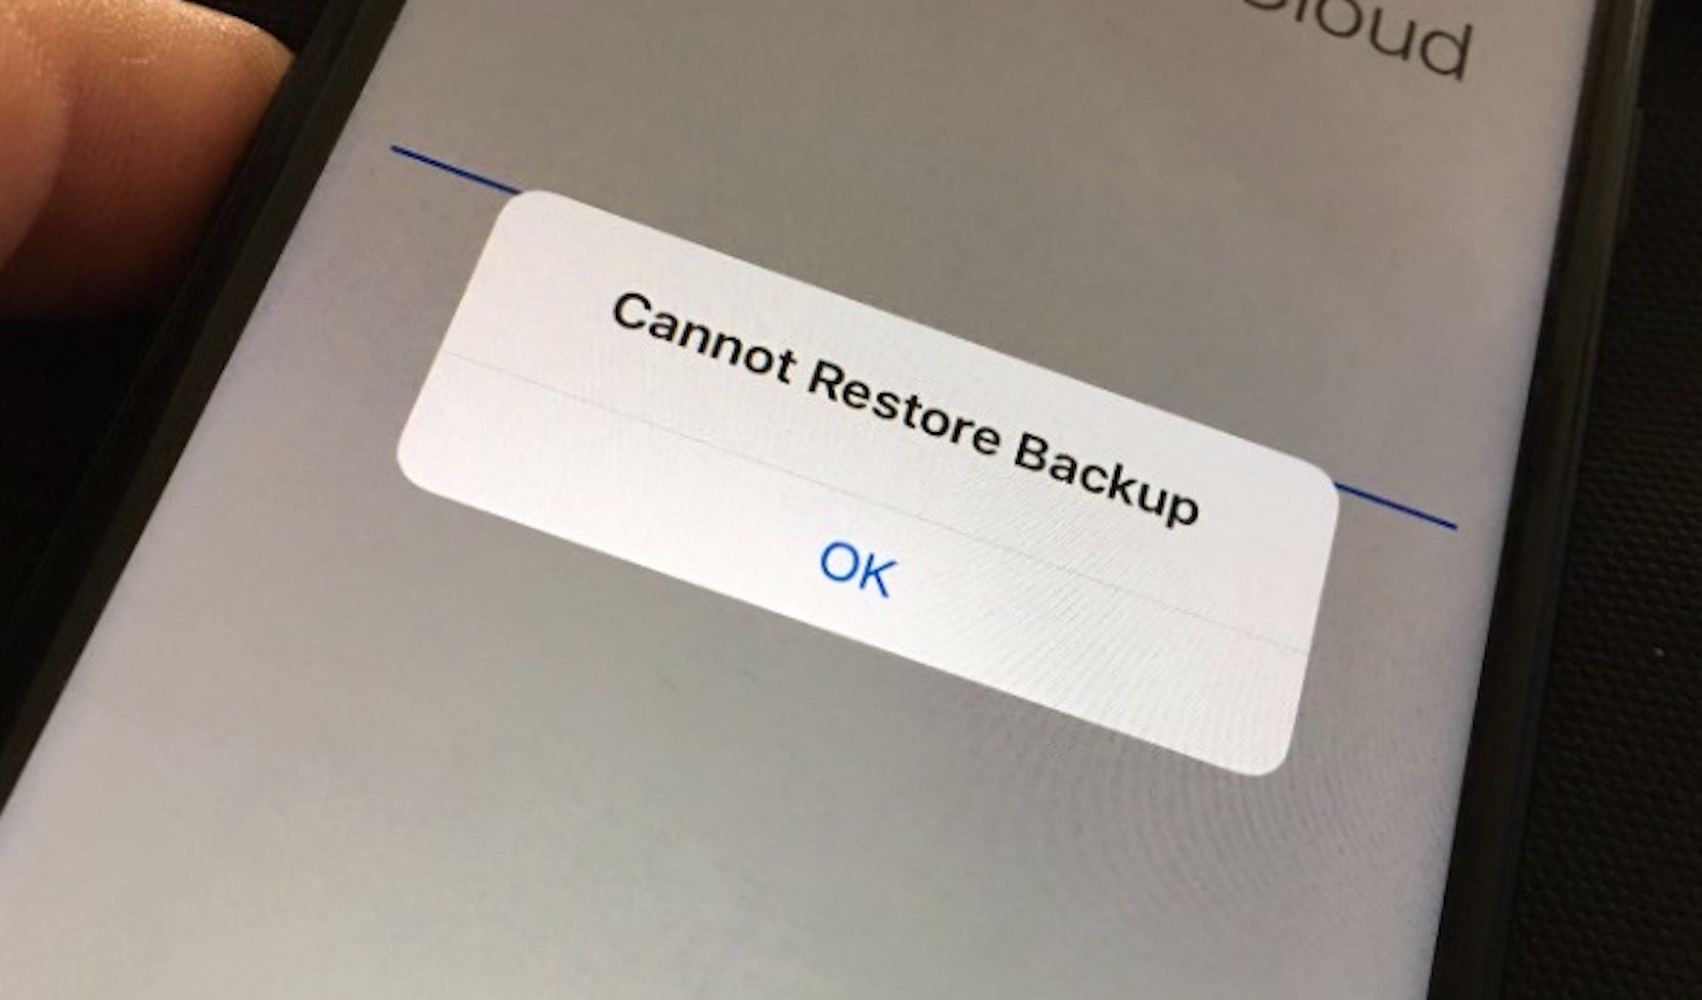 Iphone cannot restore from backup session failed